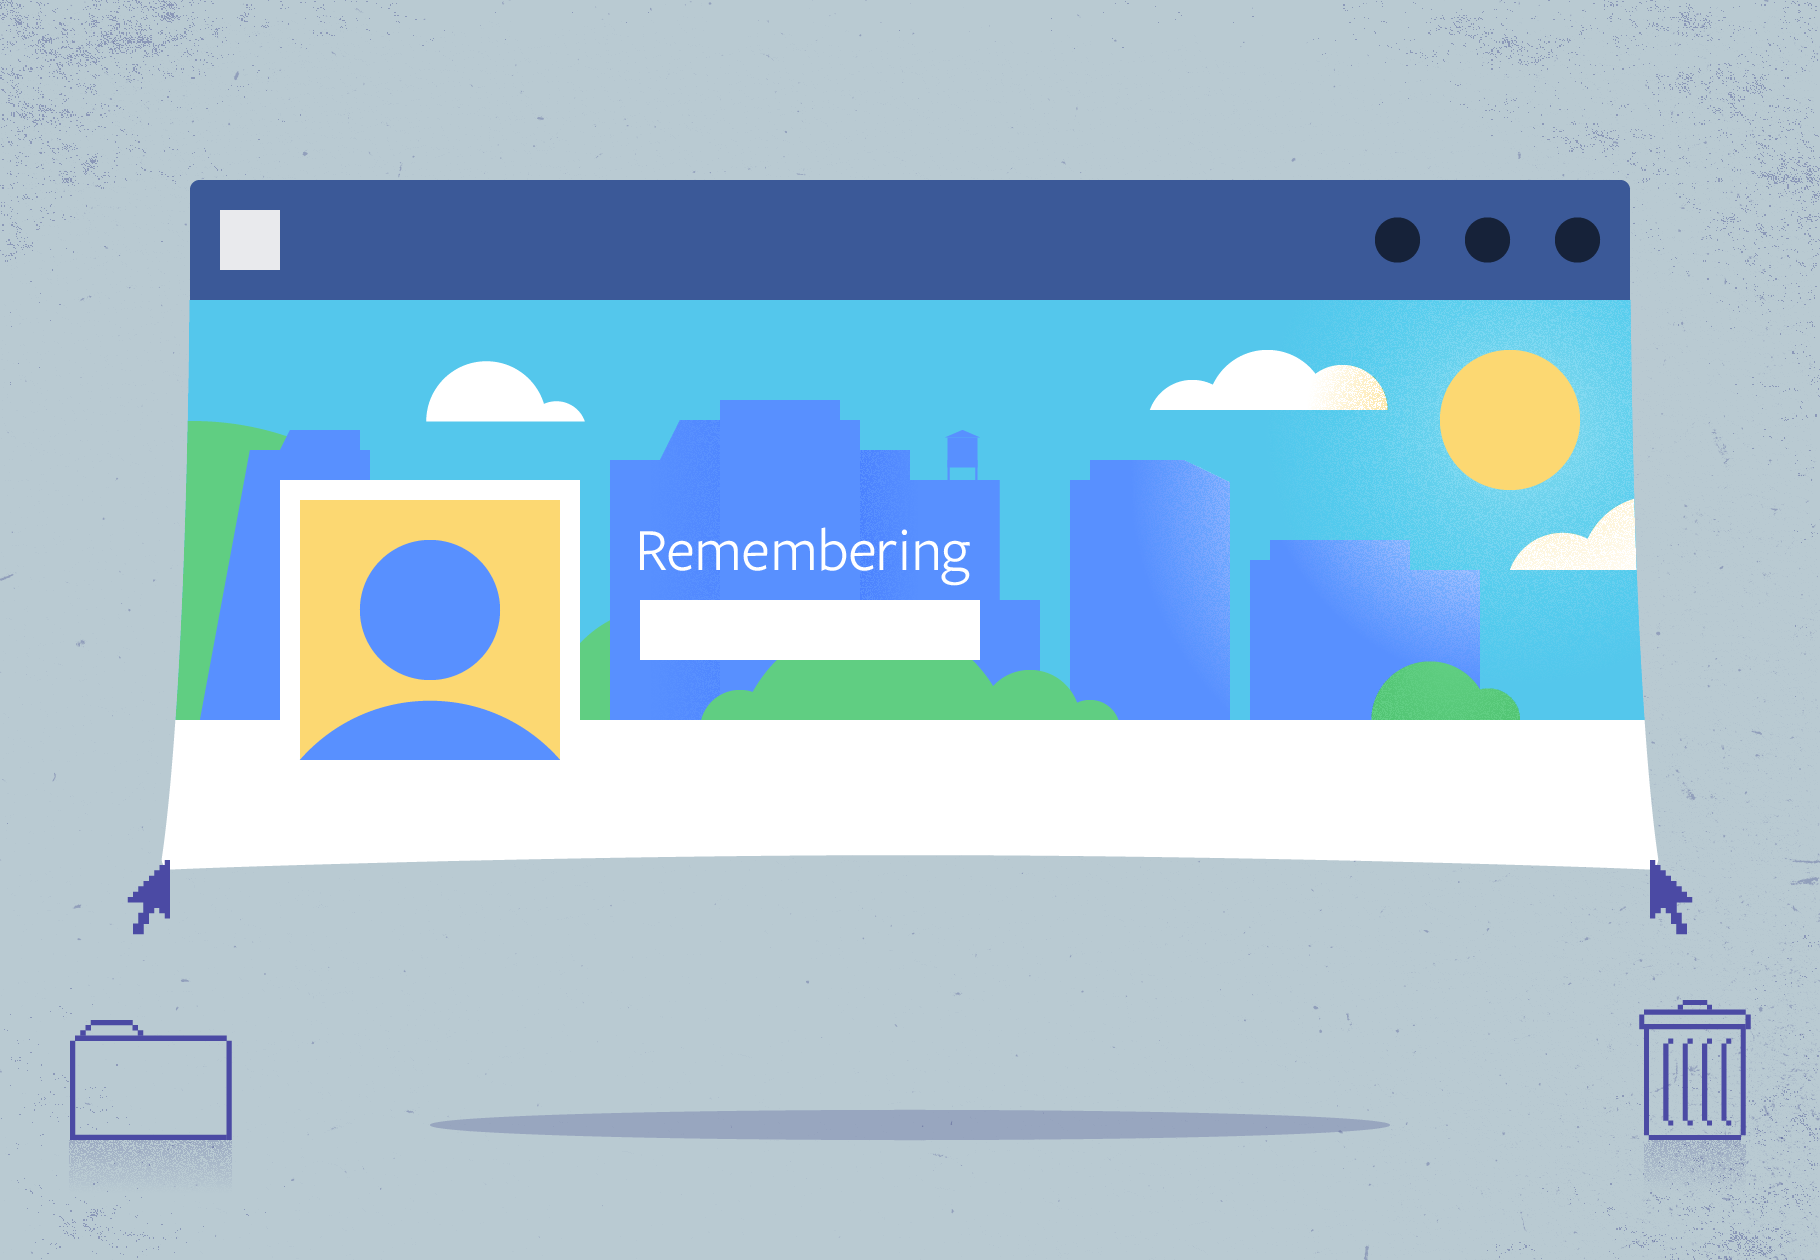 What Should Happen to People's Online Identity When They Die?